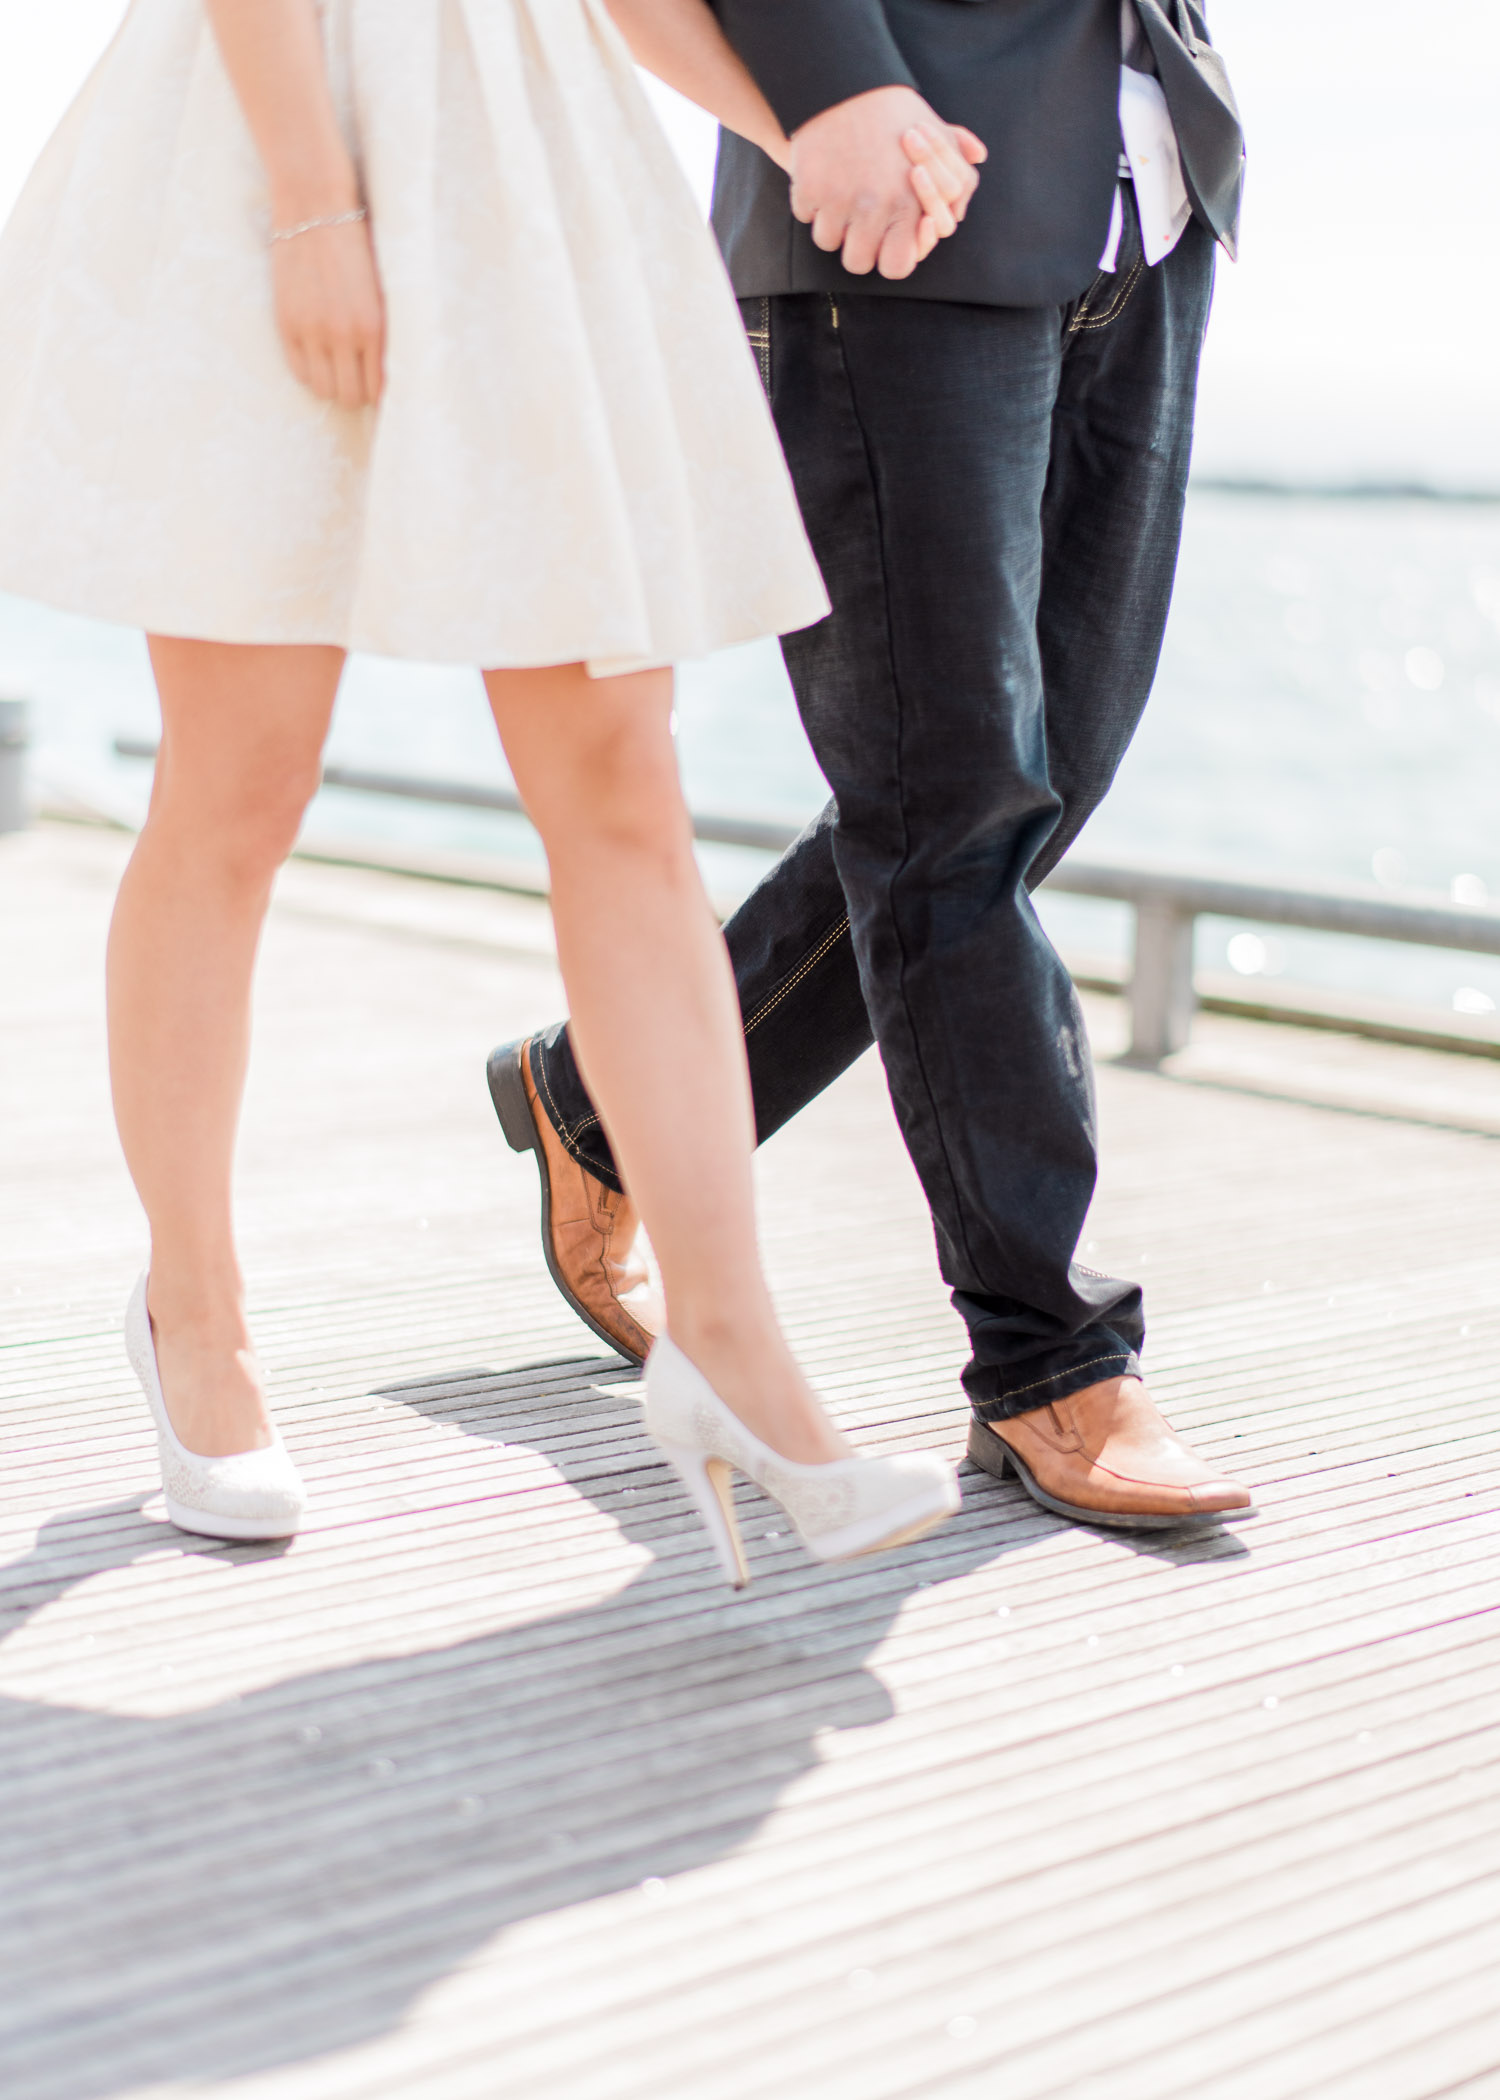 Close shot of the couple's shoes at Harbourfront Toronto